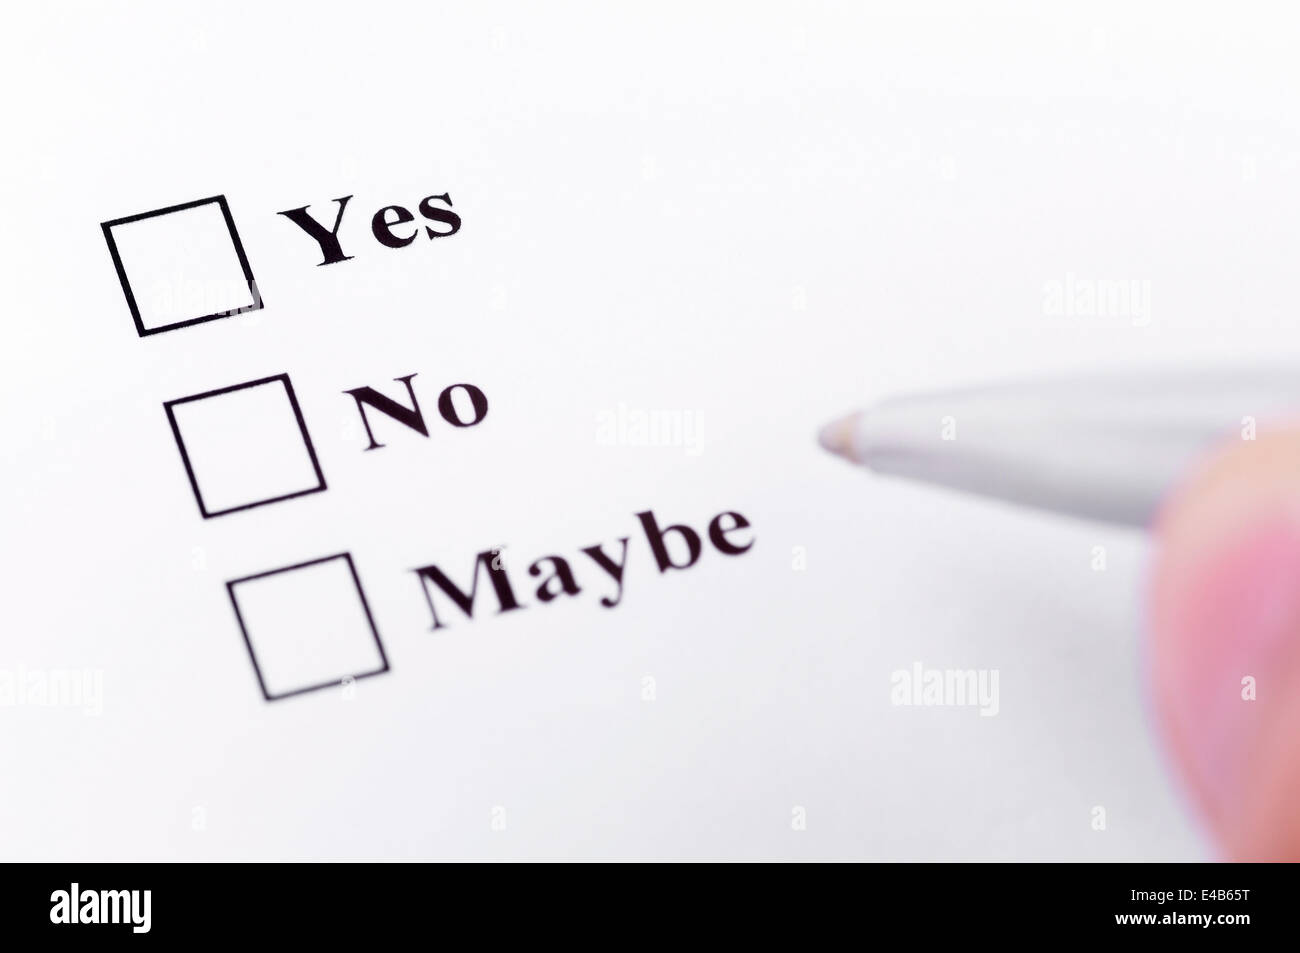 Yes, No, Maybe - Stock Image